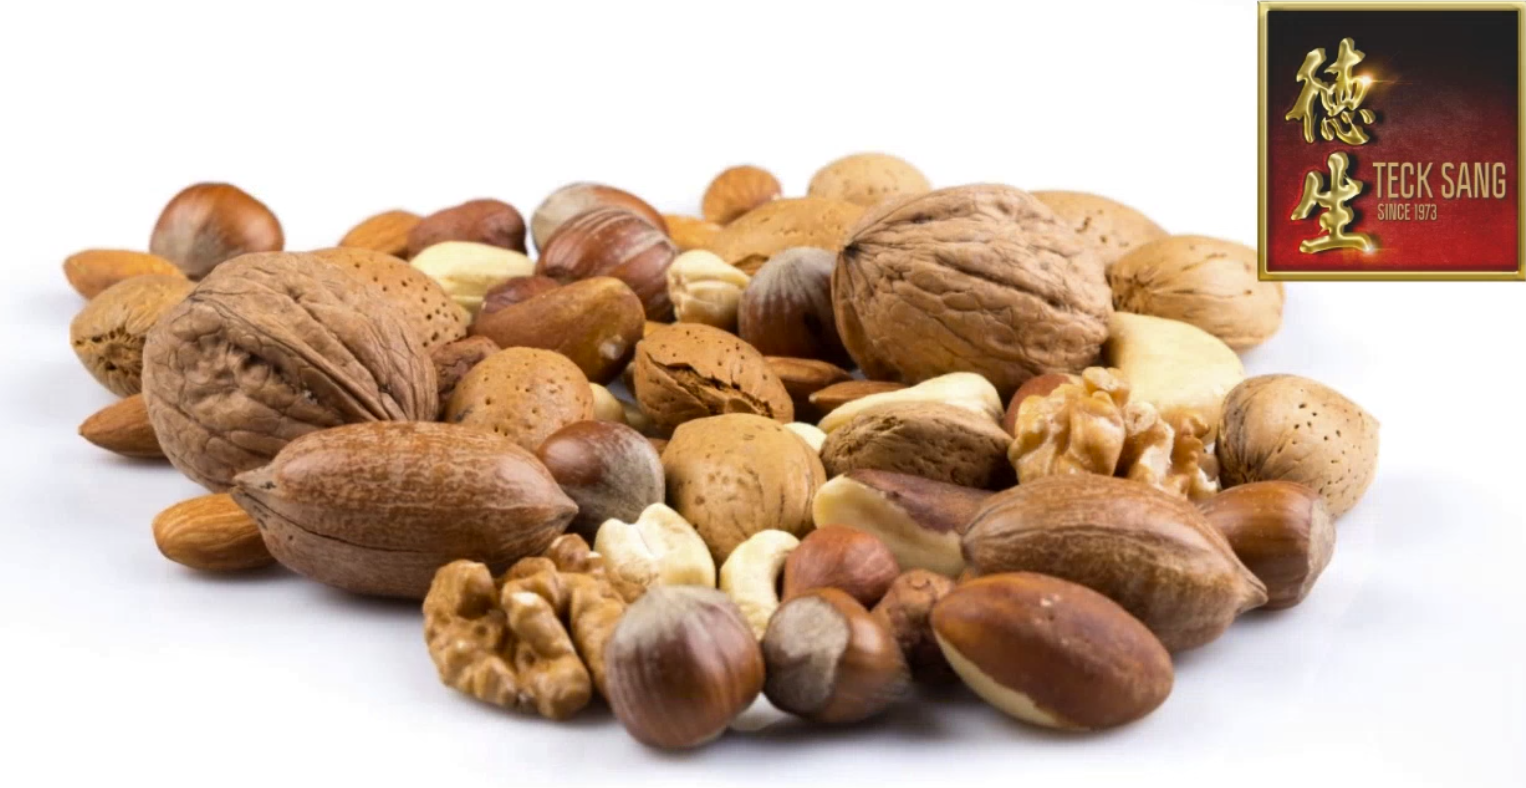 Teck Sang Sells a wide variety of nuts